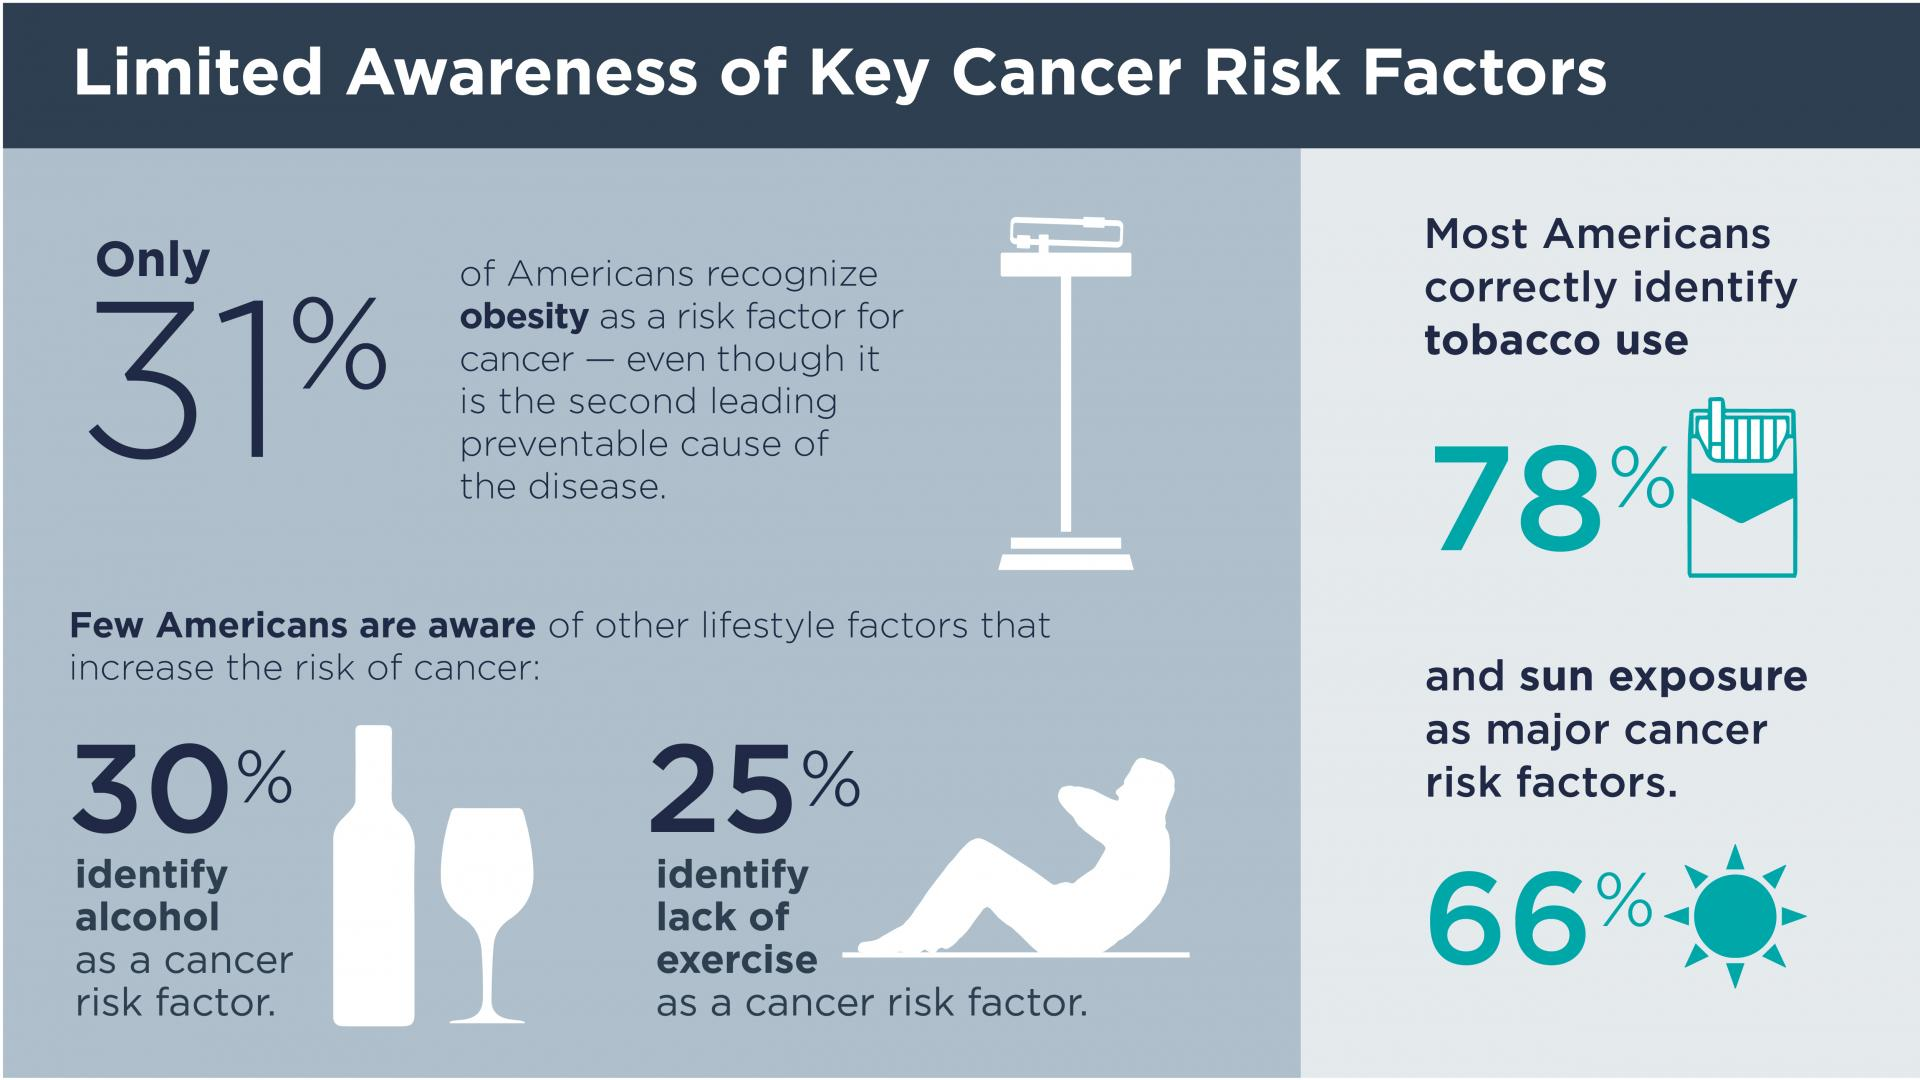 Limited Awareness of Key Cancer Risk Factors